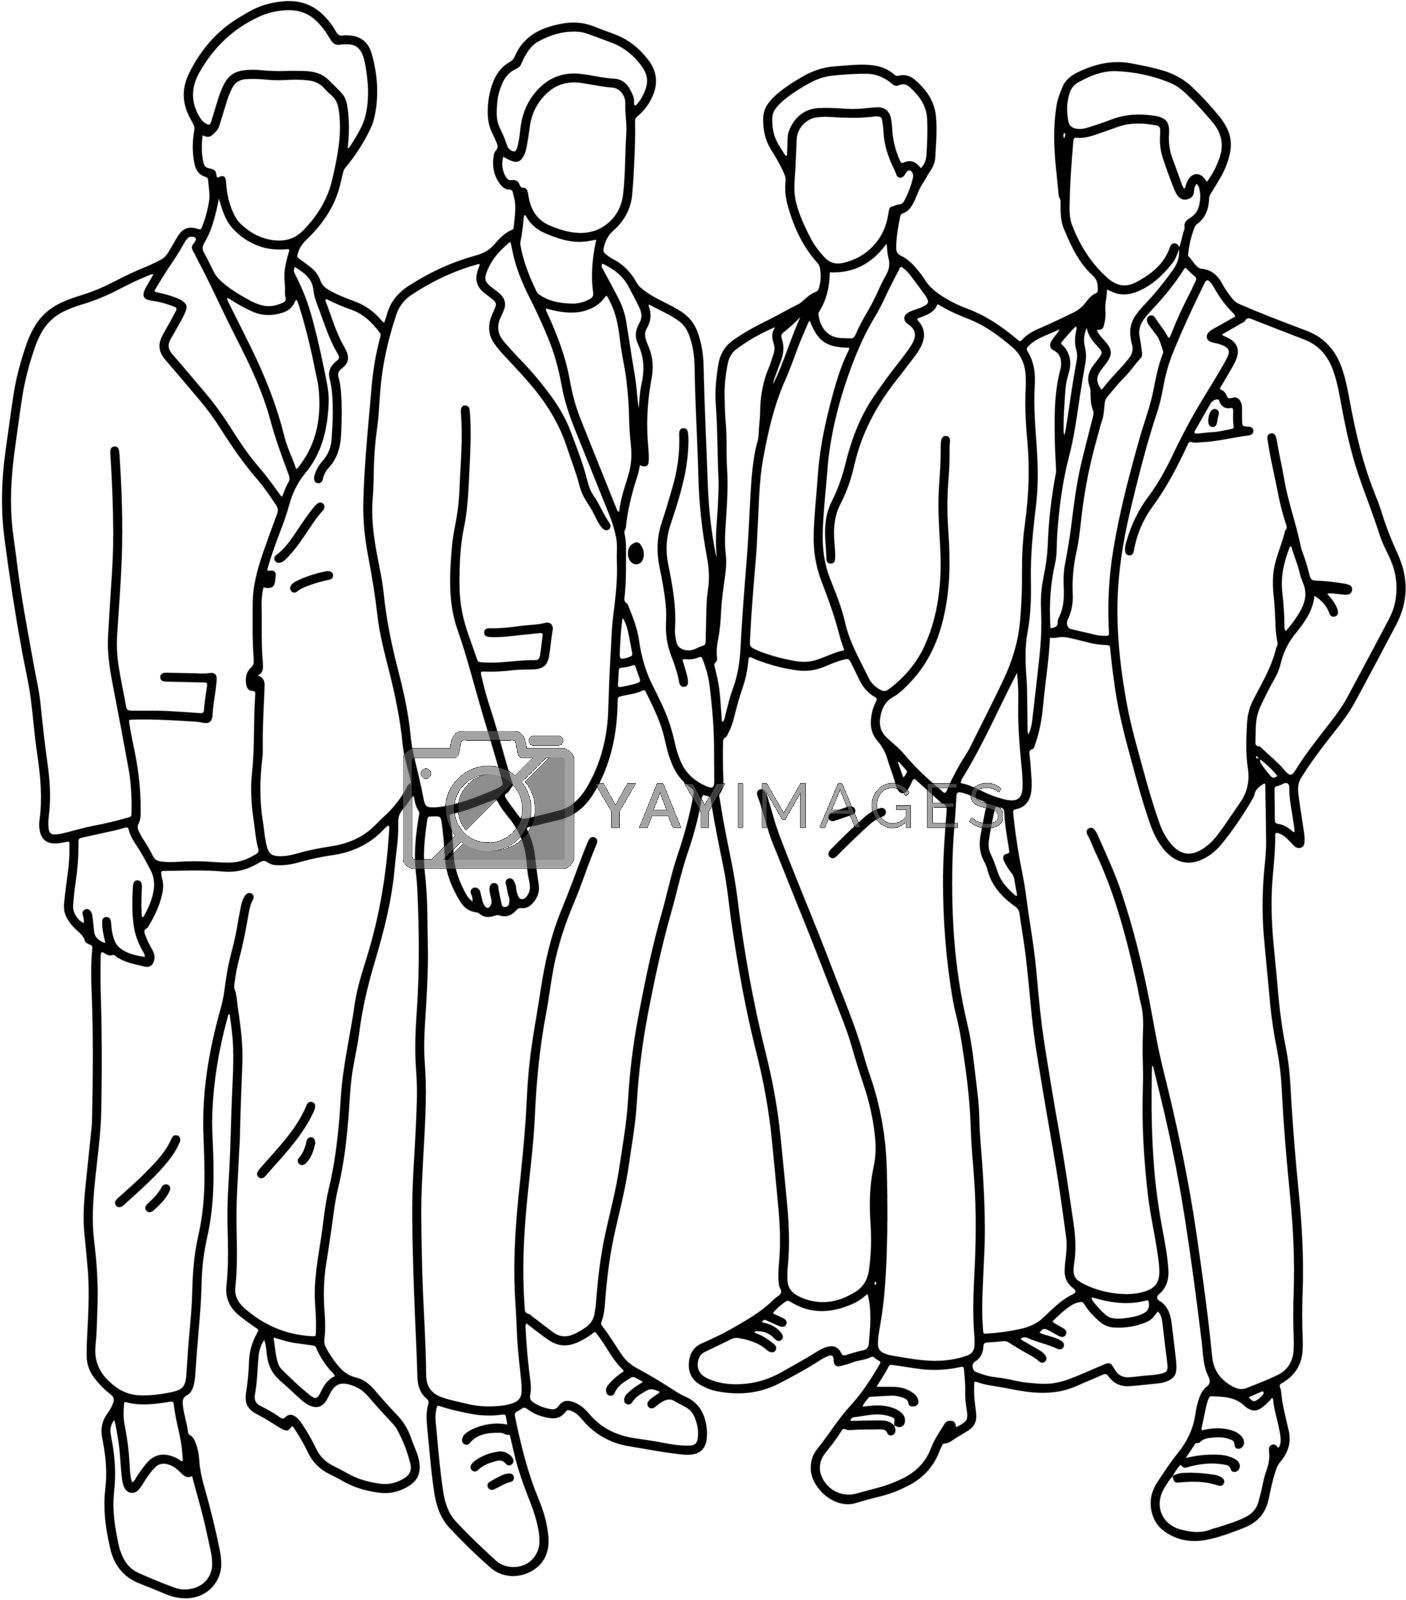 four male businesspeople standing together vector illustration sketch doodle hand drawn with black lines isolated on white background. Teamwork business concept.